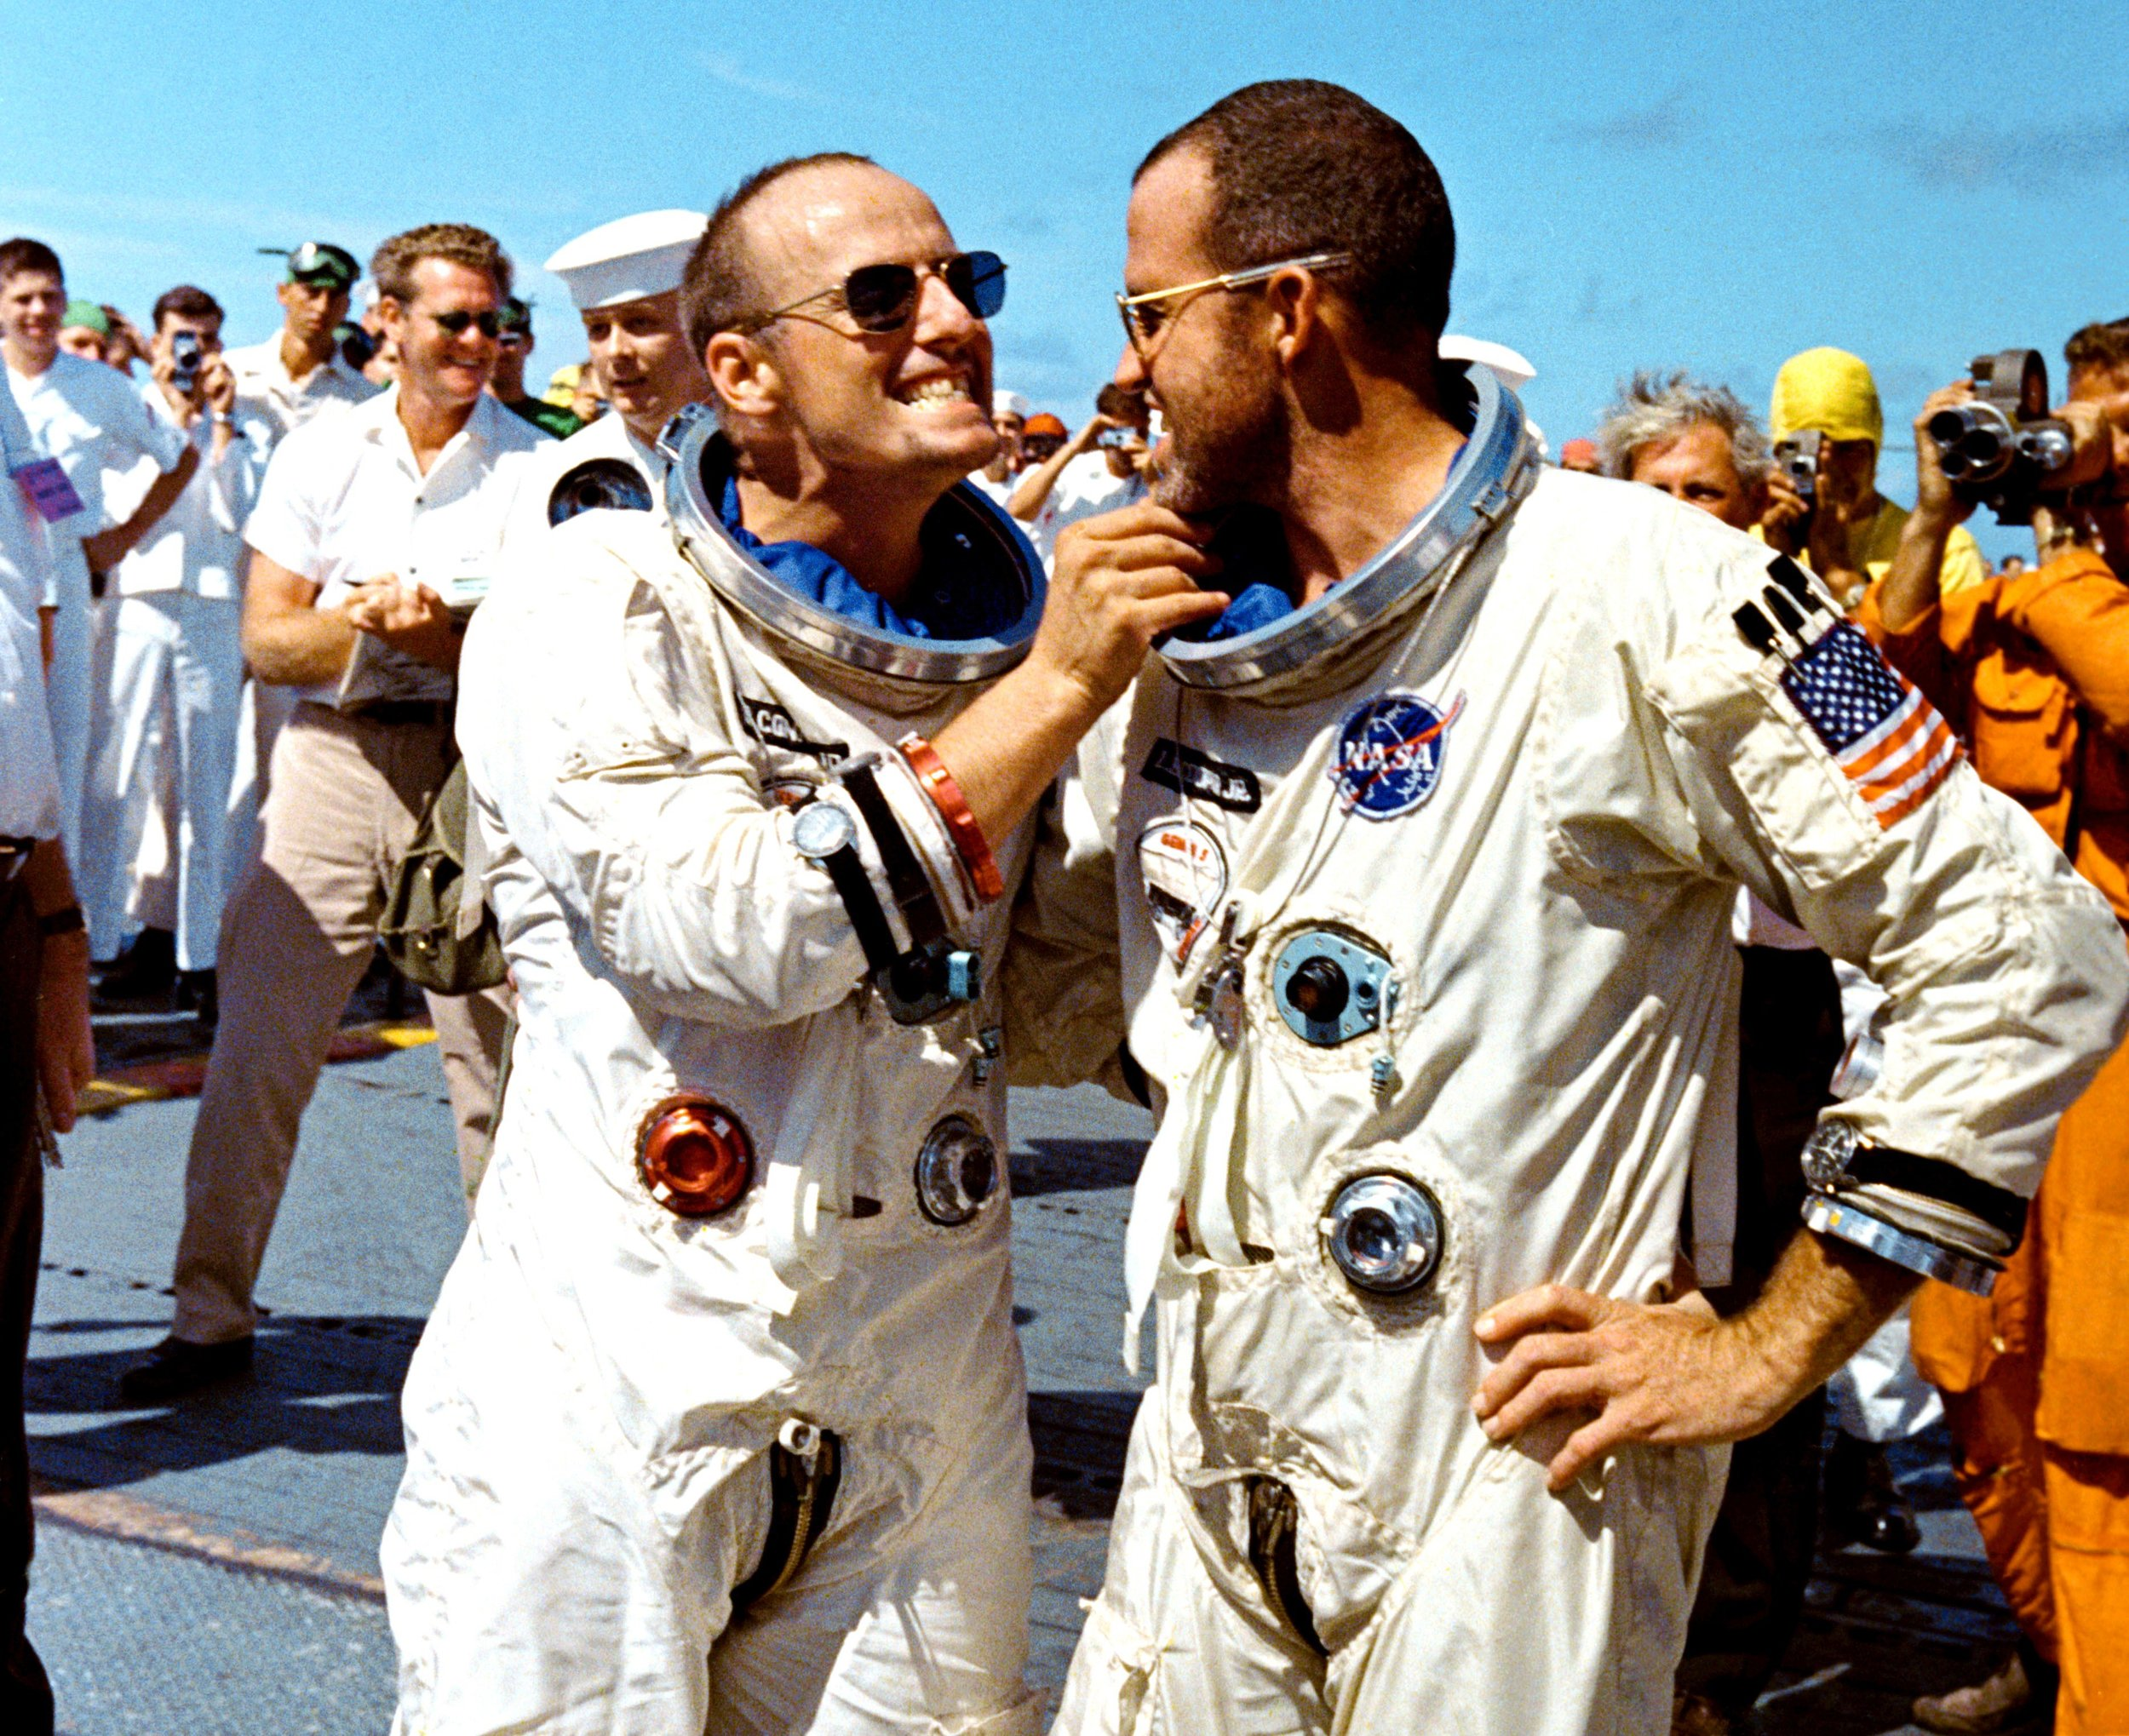 After recovery by the crew of the USS Lake Champlain on Aug. 29, 1965, Gemini V pilot Charles Pete Conrad tweaks the eight-day growth of beard of command pilot Gordon Cooper.